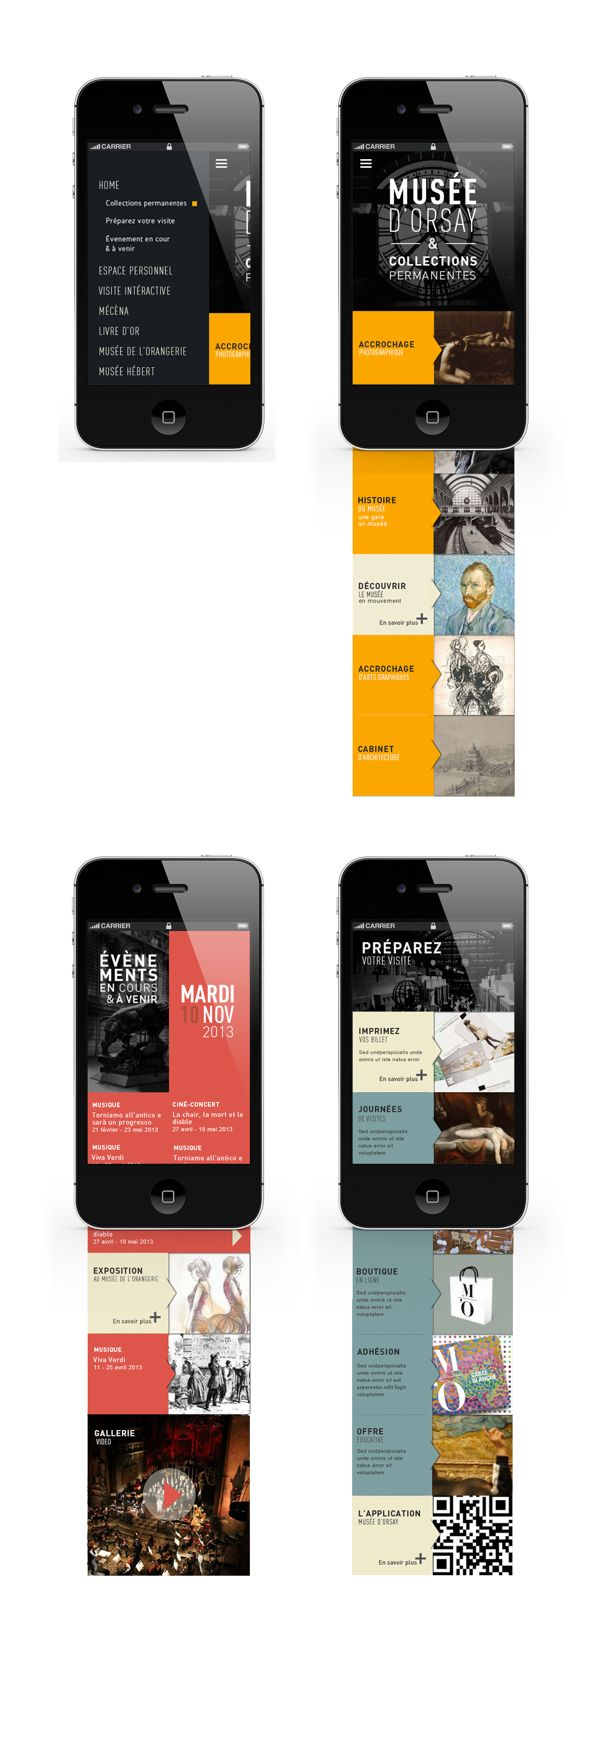 <> Orsay Museum by Jeremy Perrot-Minnot, via Behance, great way to display mobile design